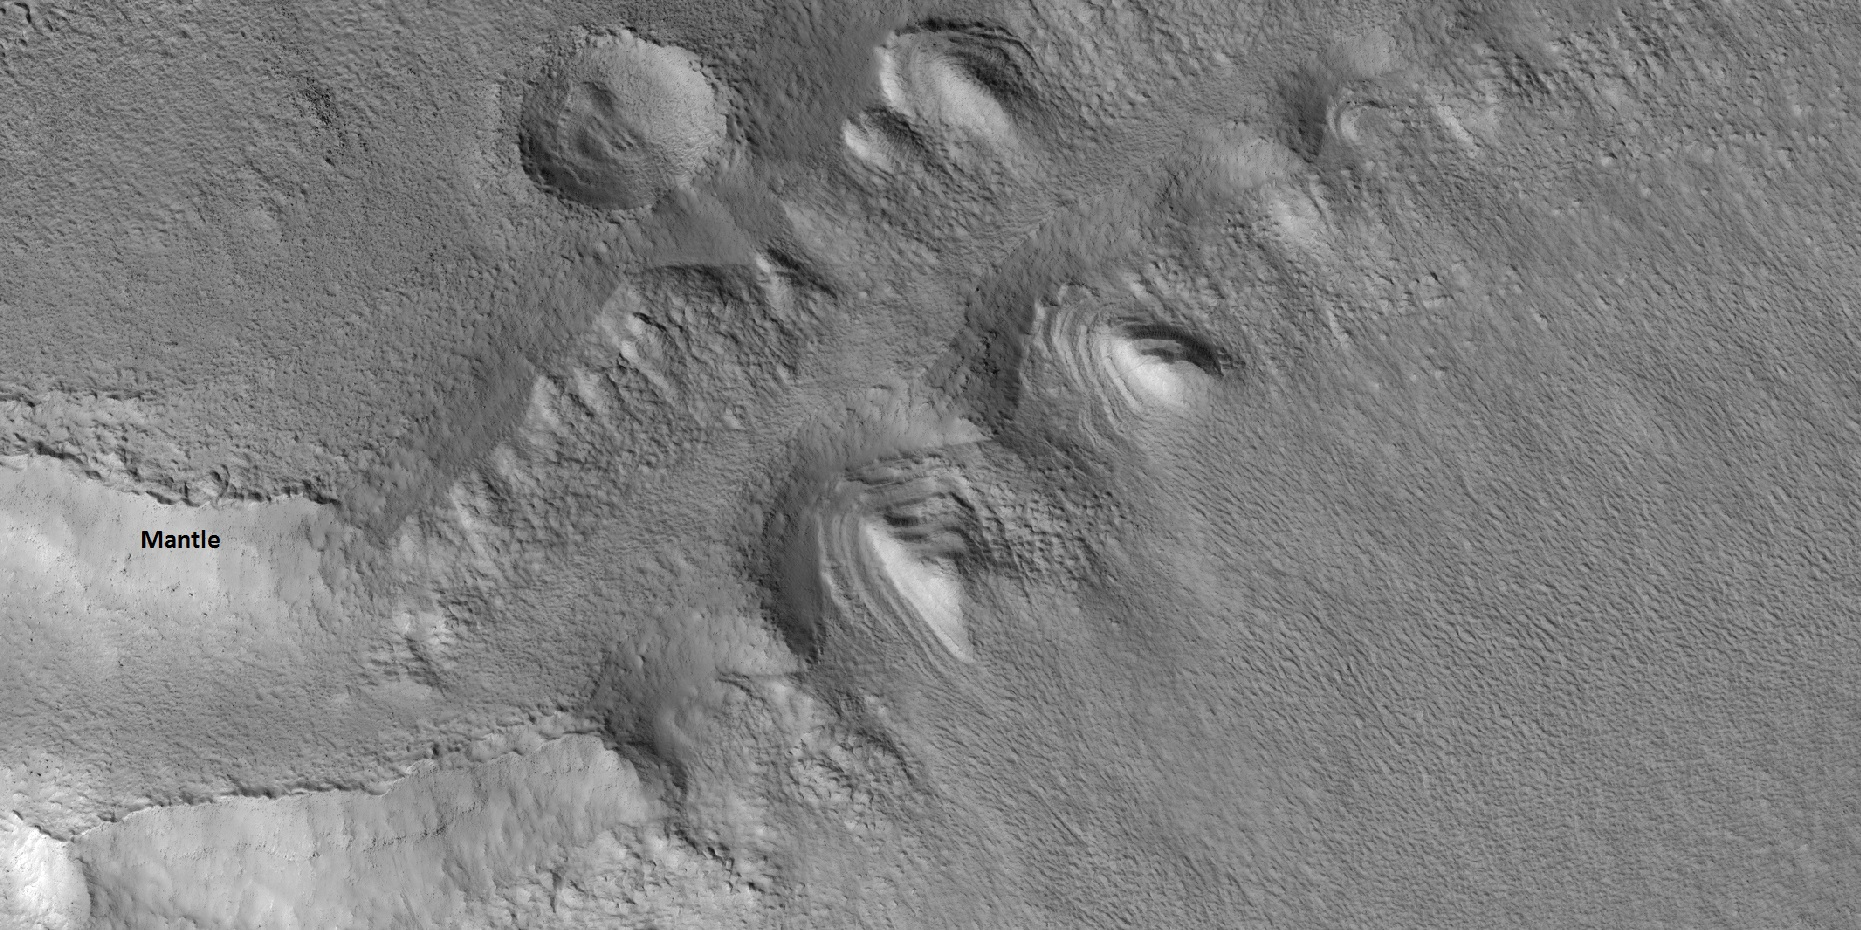 Close view of slopes that contain dipping layered features, as seen by HiRISE under HiWish program